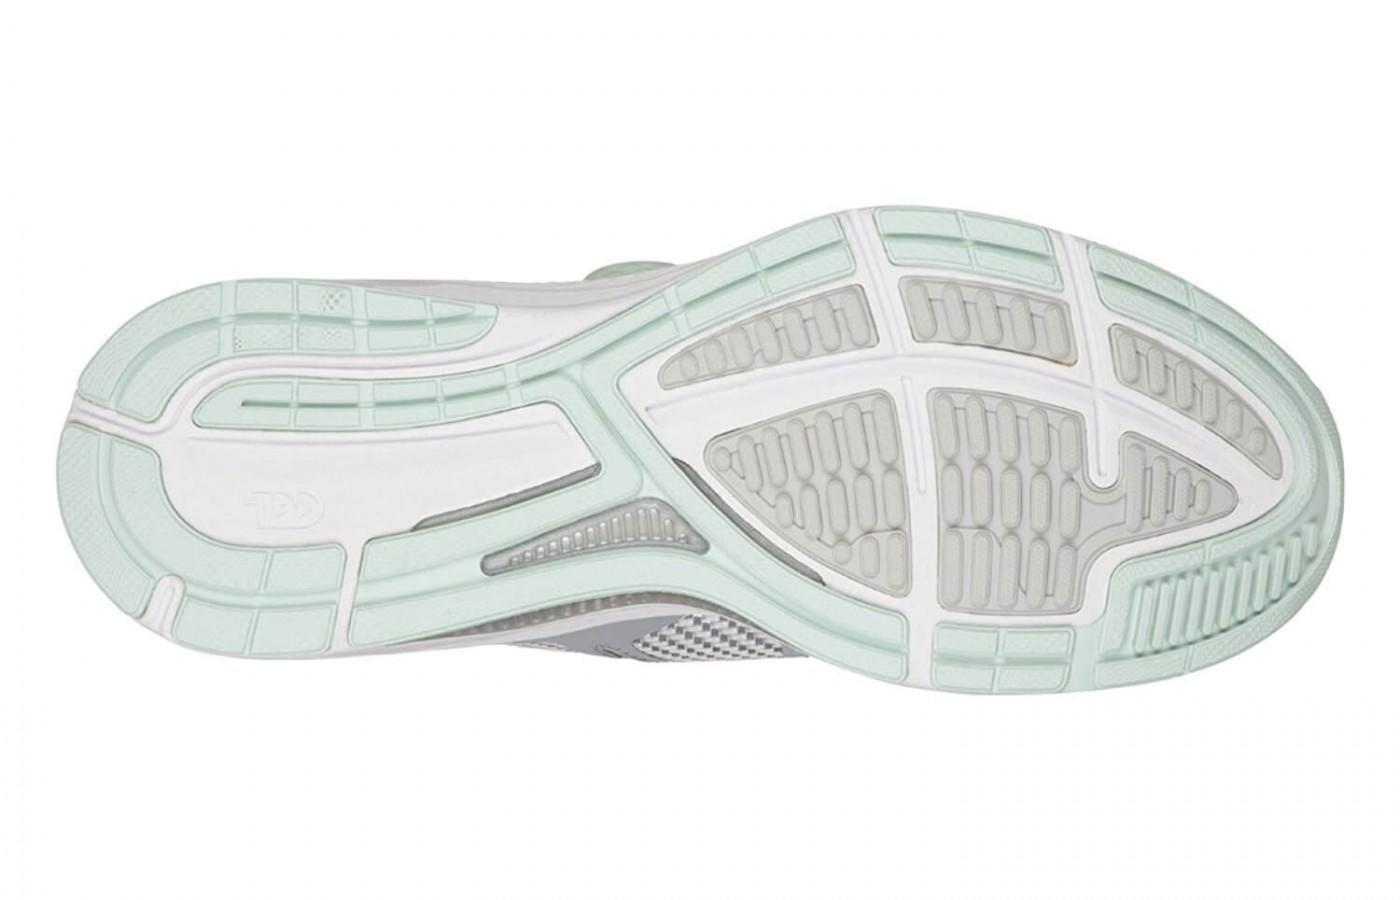 The Asics Dynamis has a high abrasion rubber outsole